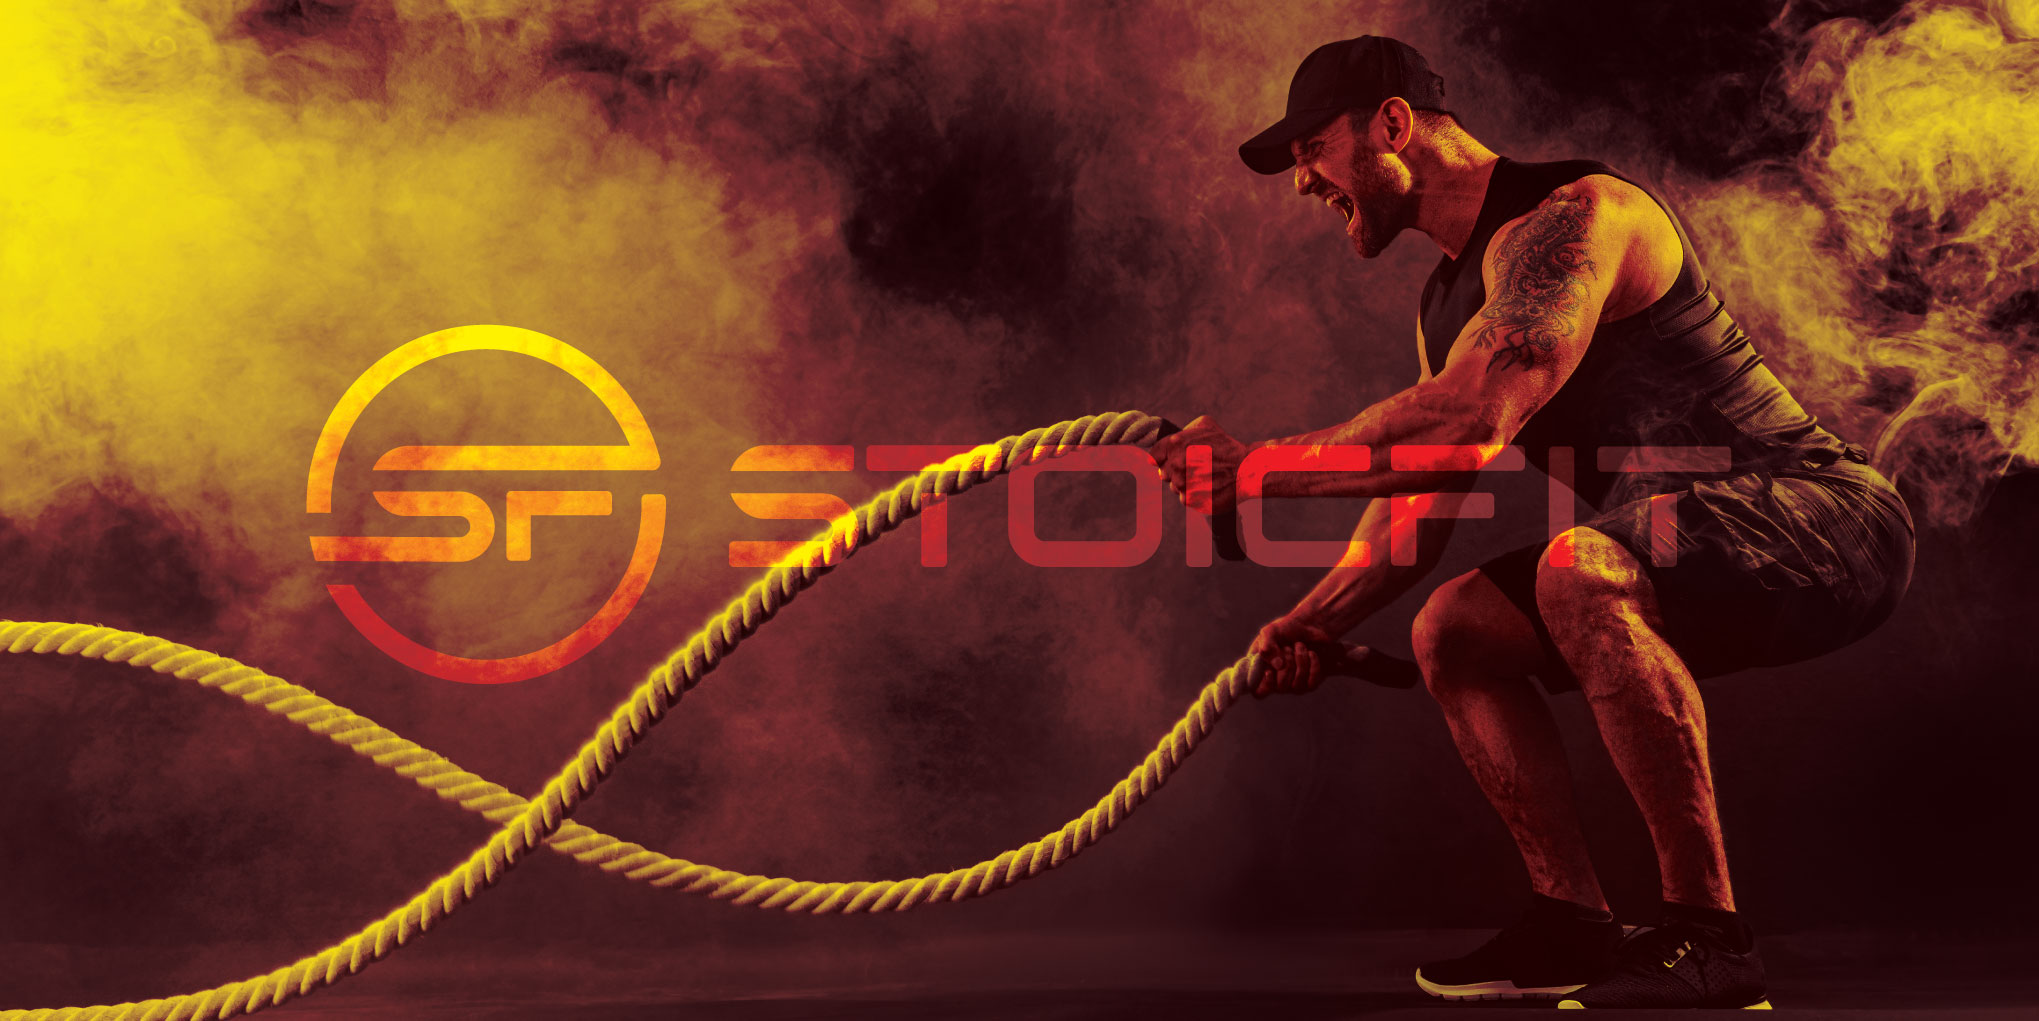 Stoic Fit